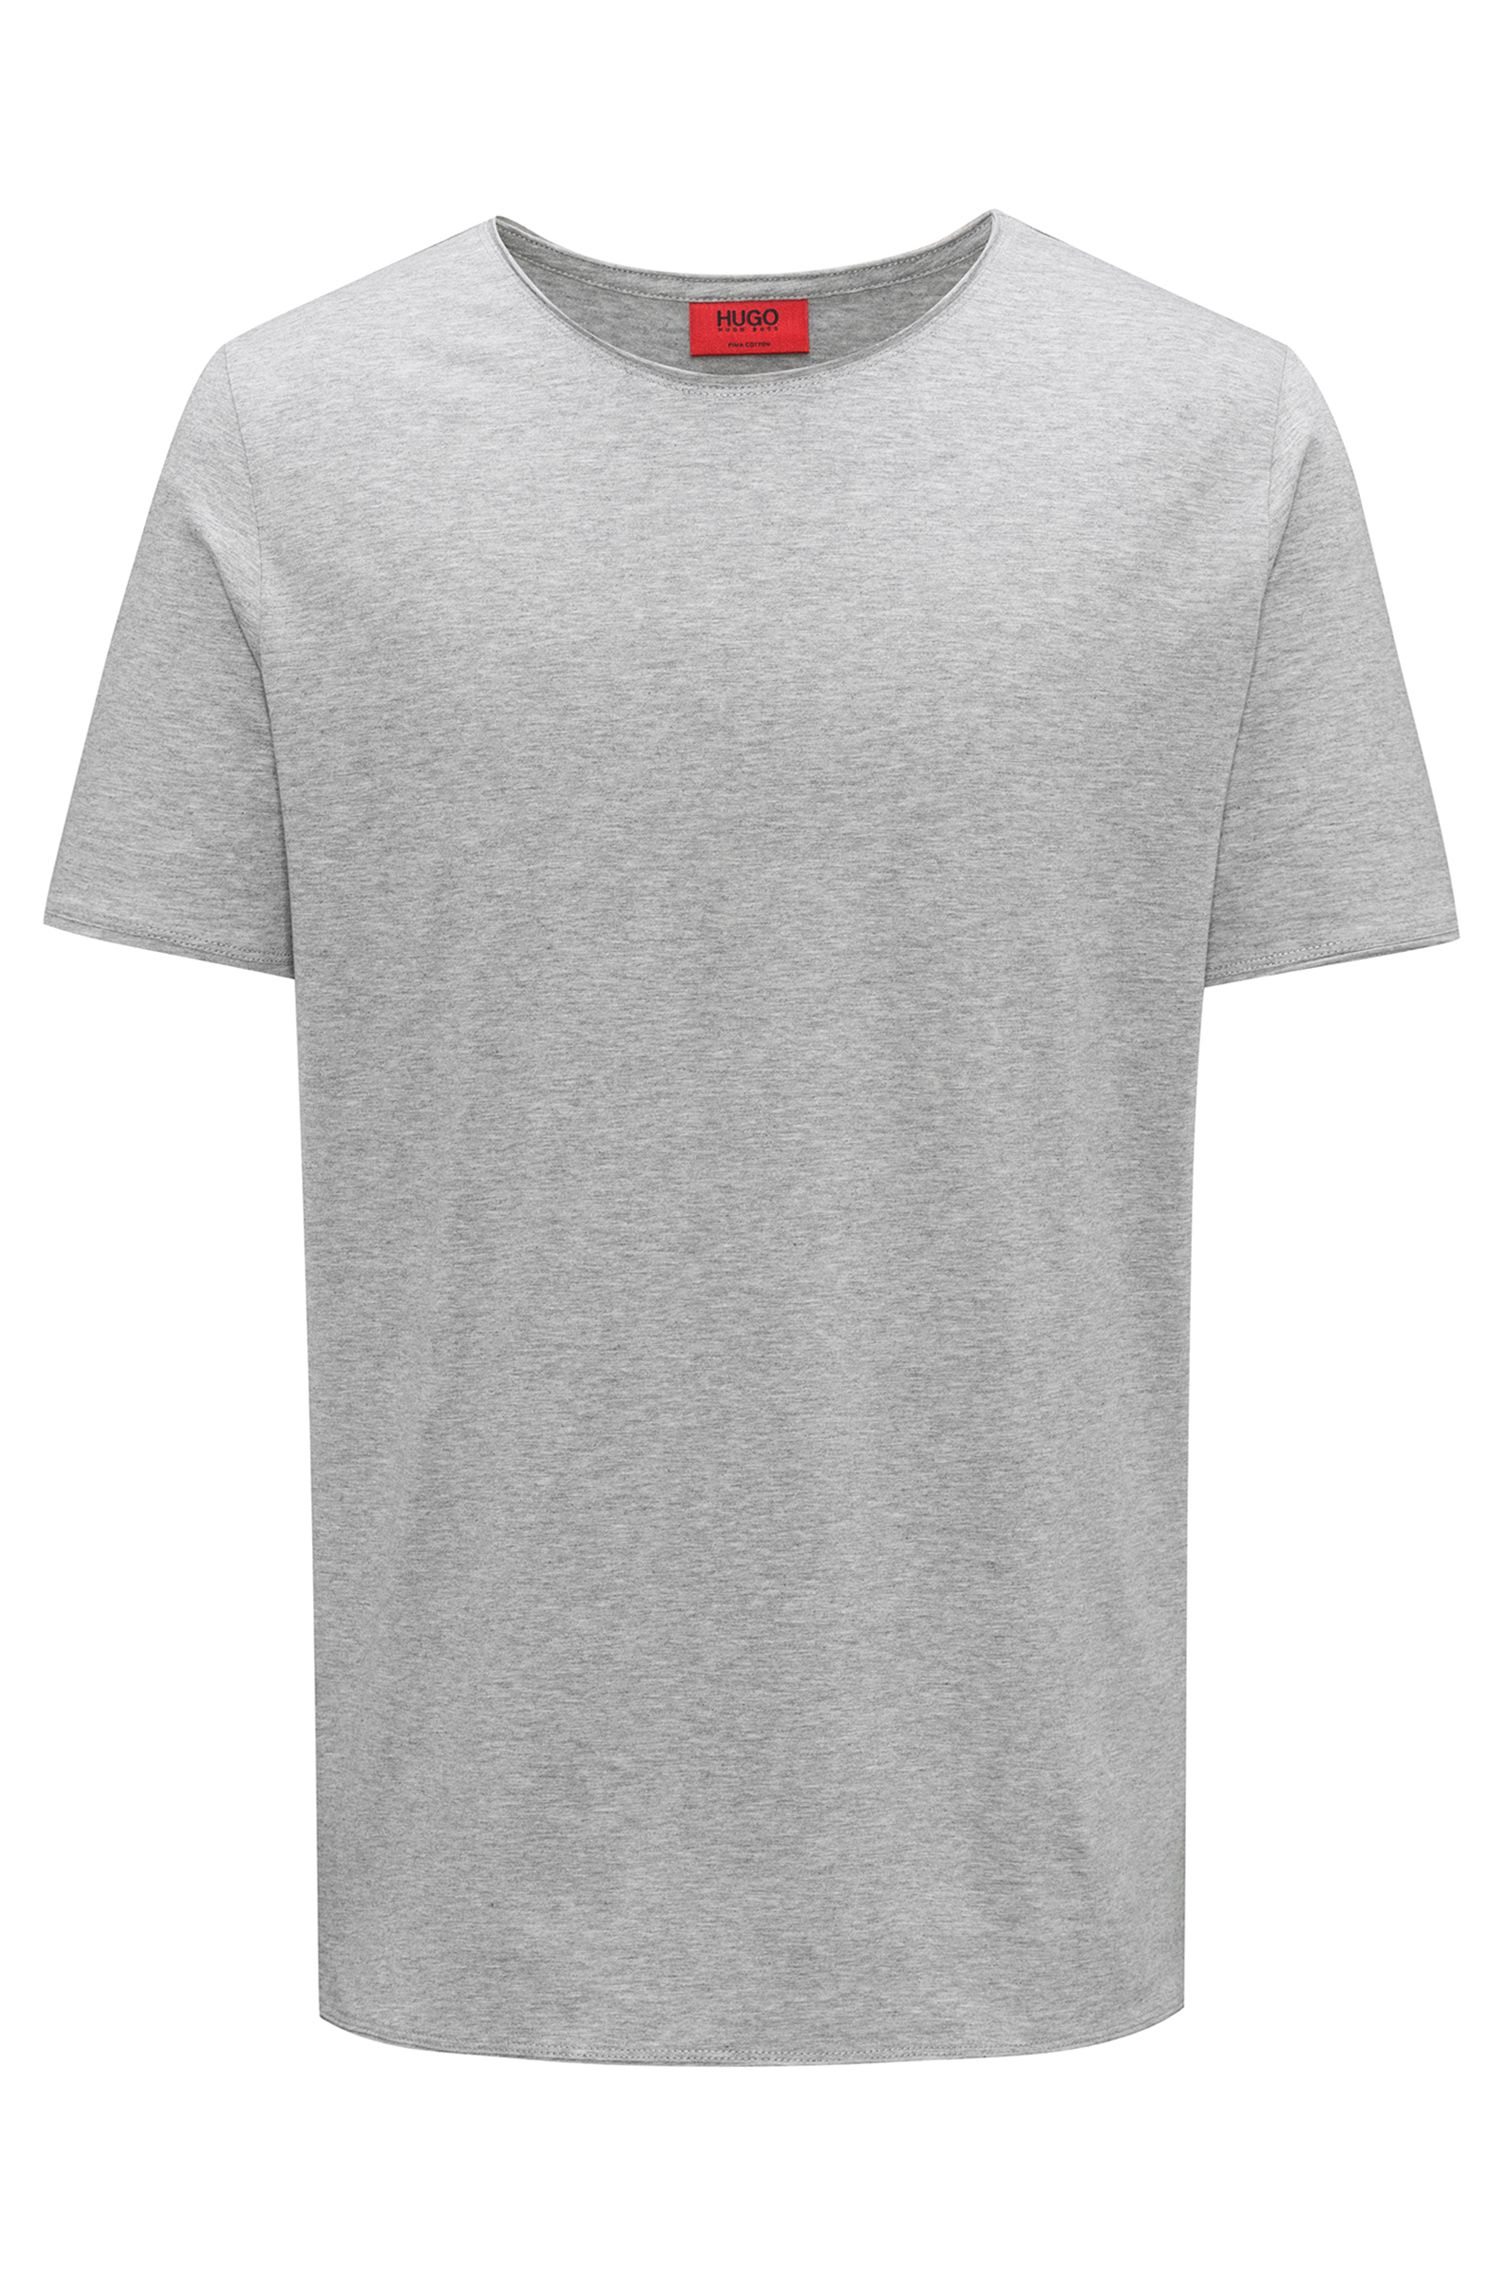 Regular-Fit T-Shirt aus Pima-Baumwolle